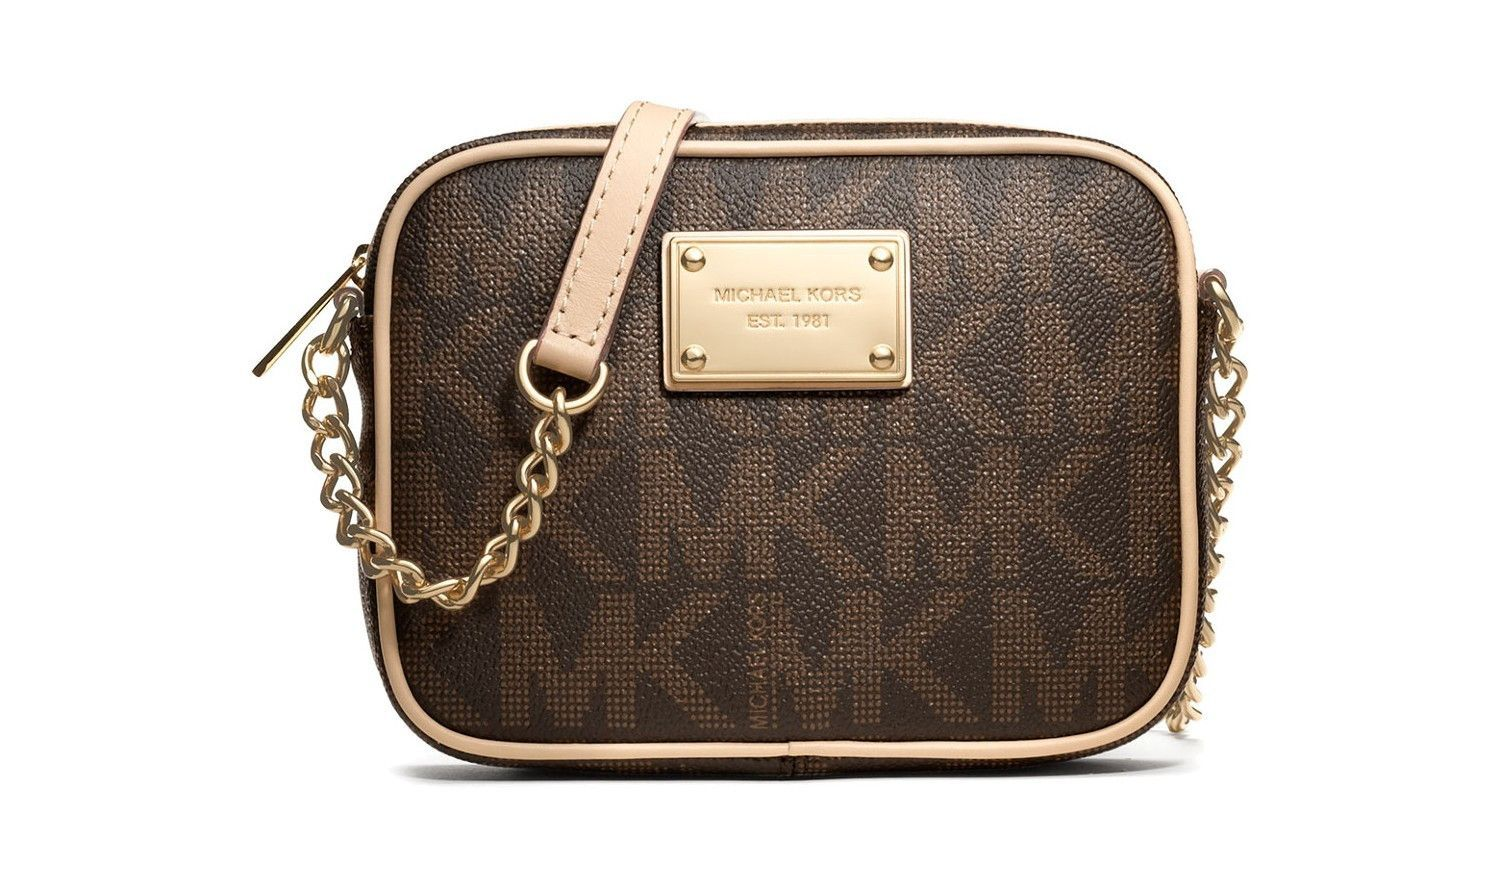 Michael Kors Jet Set Small Crossbody Bag